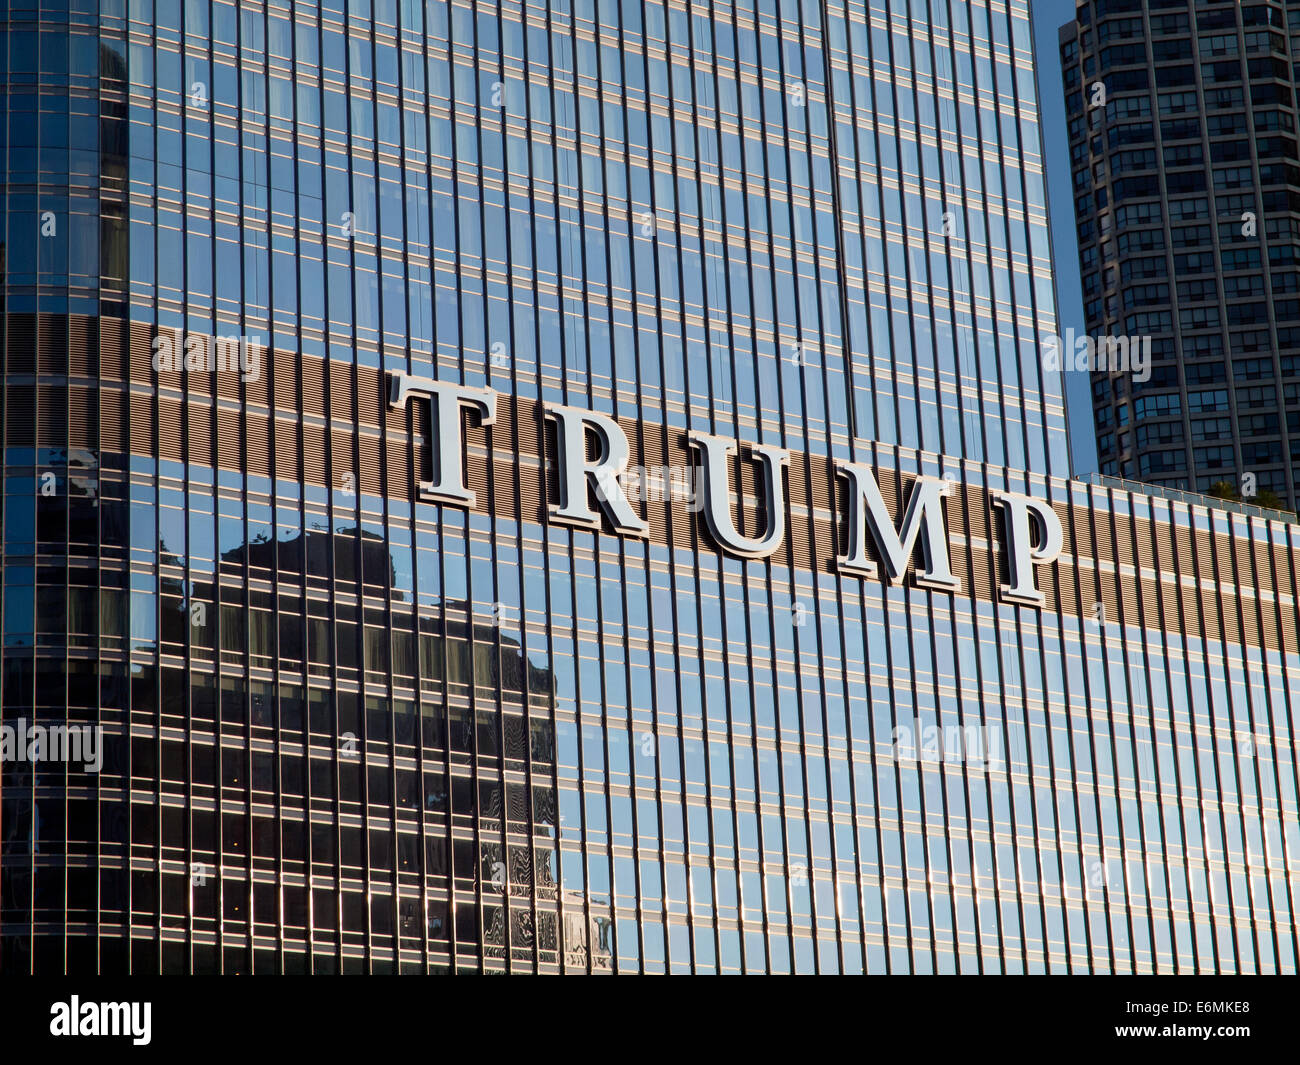 A view of the infamous TRUMP sign on the exterior of the Trump International Hotel and Tower in Chicago, Illinois. - Stock Image